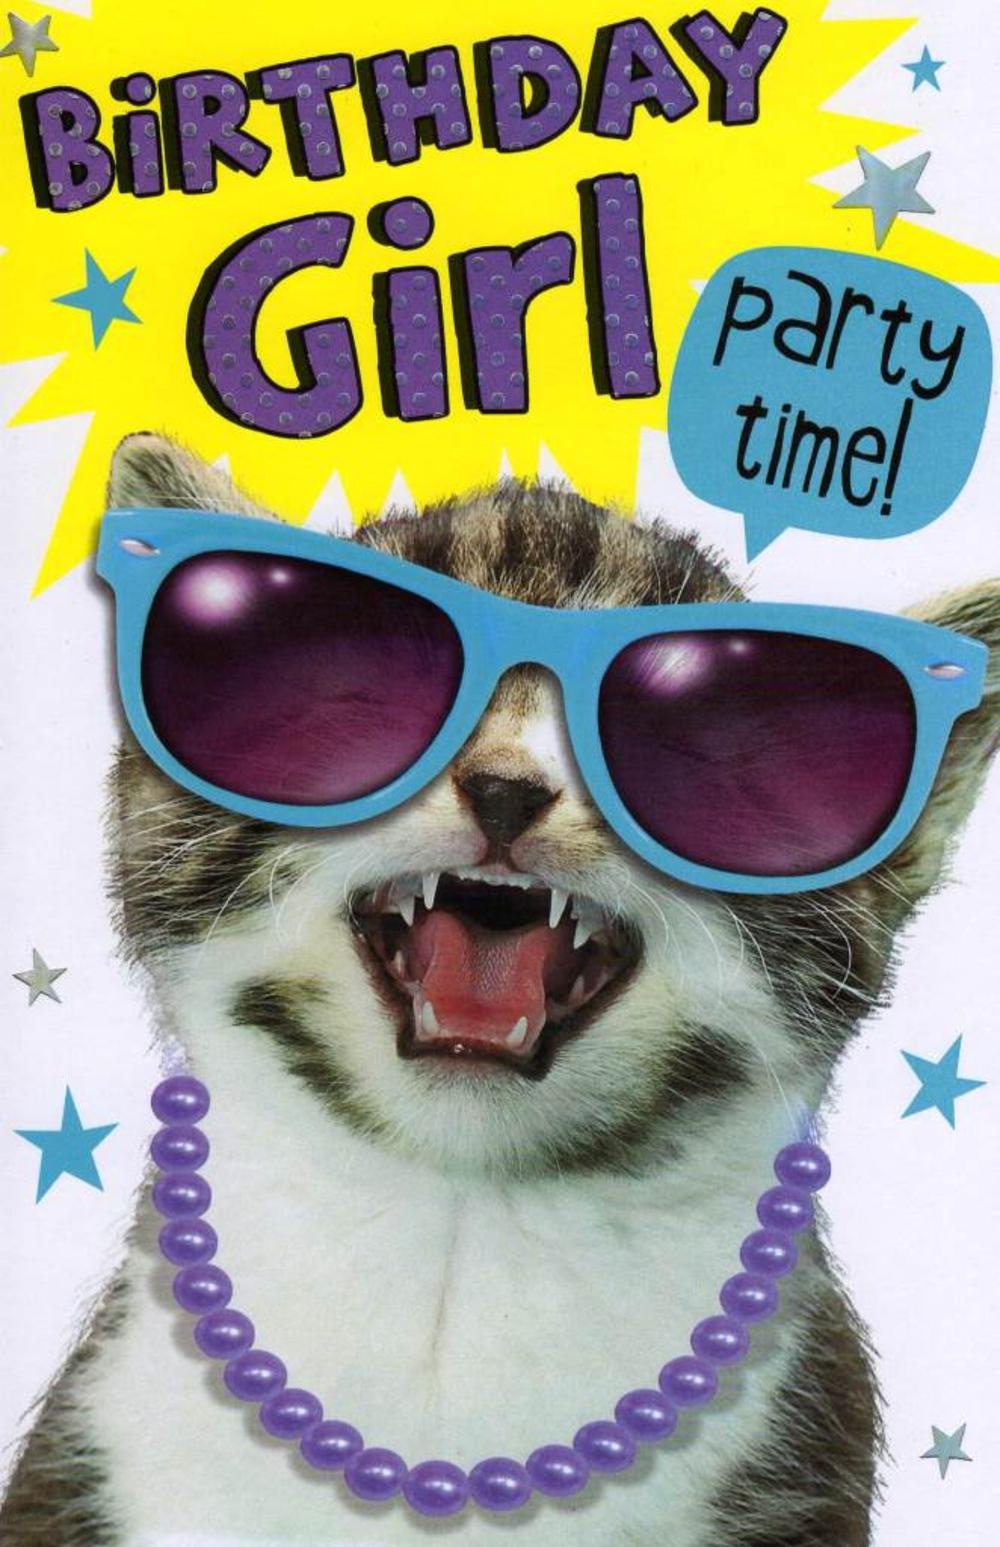 Funny Birthday Girl Party Time Birthday Card Cards